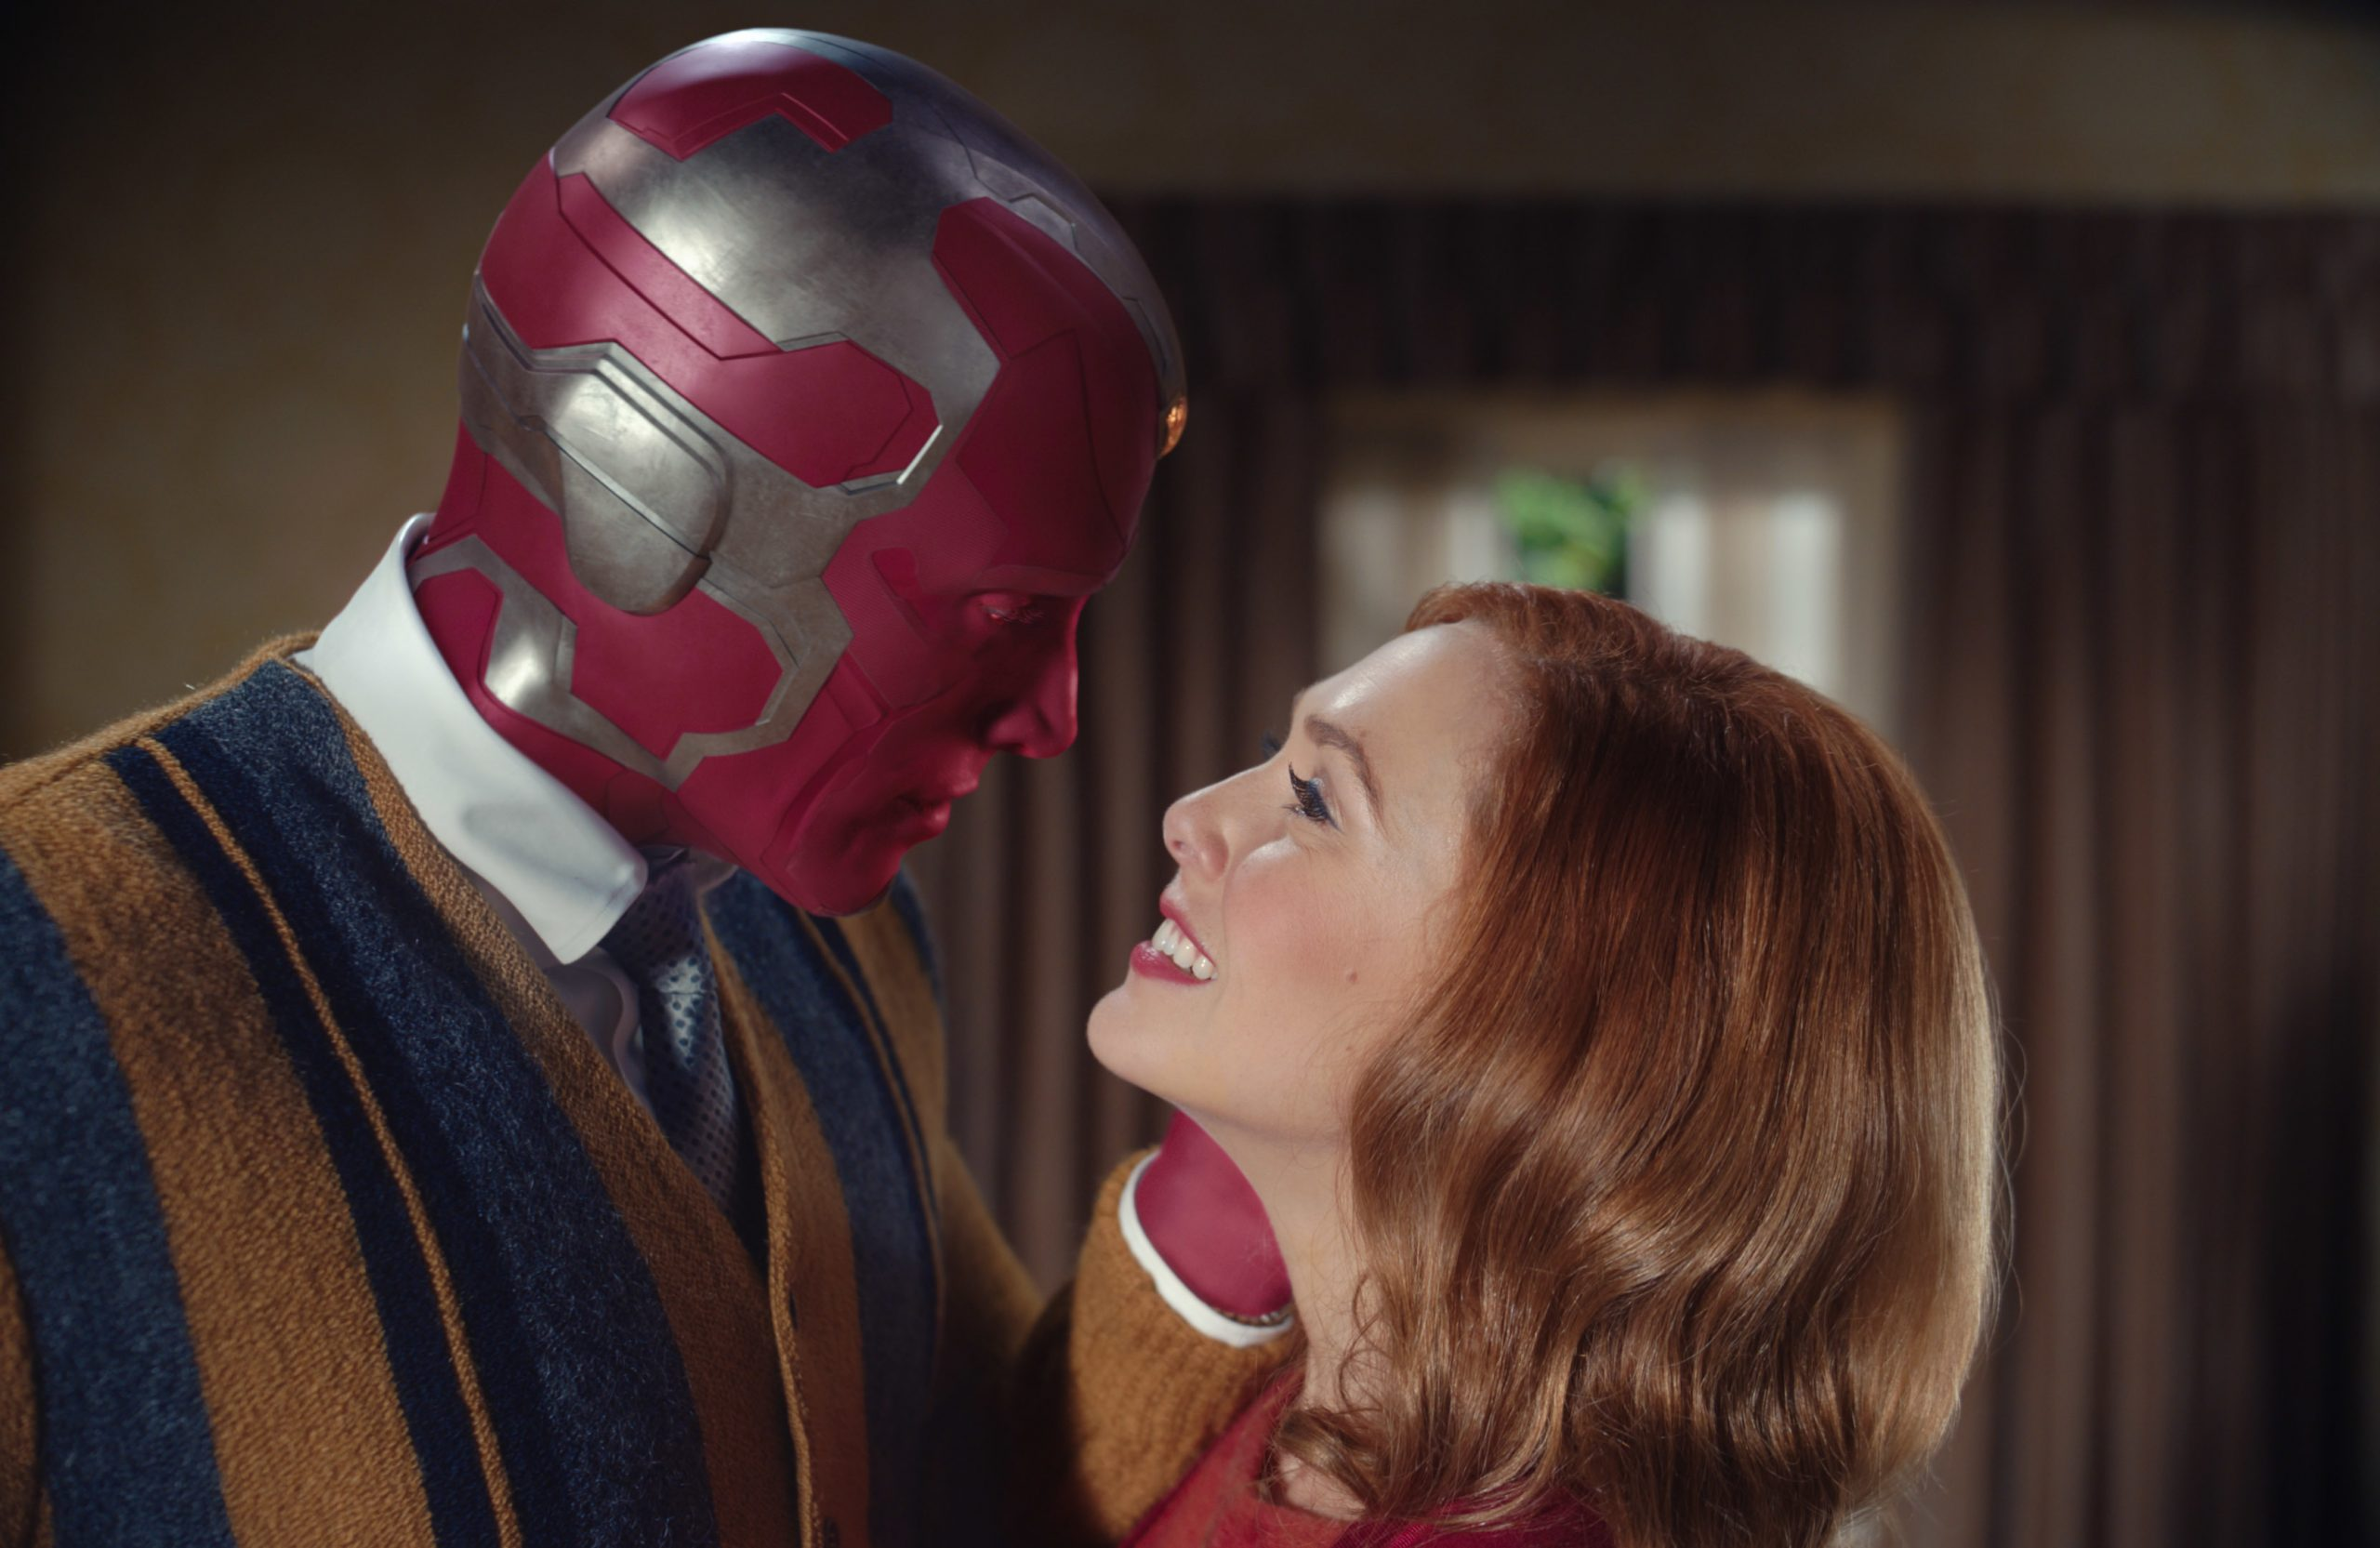 Paul Bettany as Vision and Olsen as Wanda in 'WandaVision'